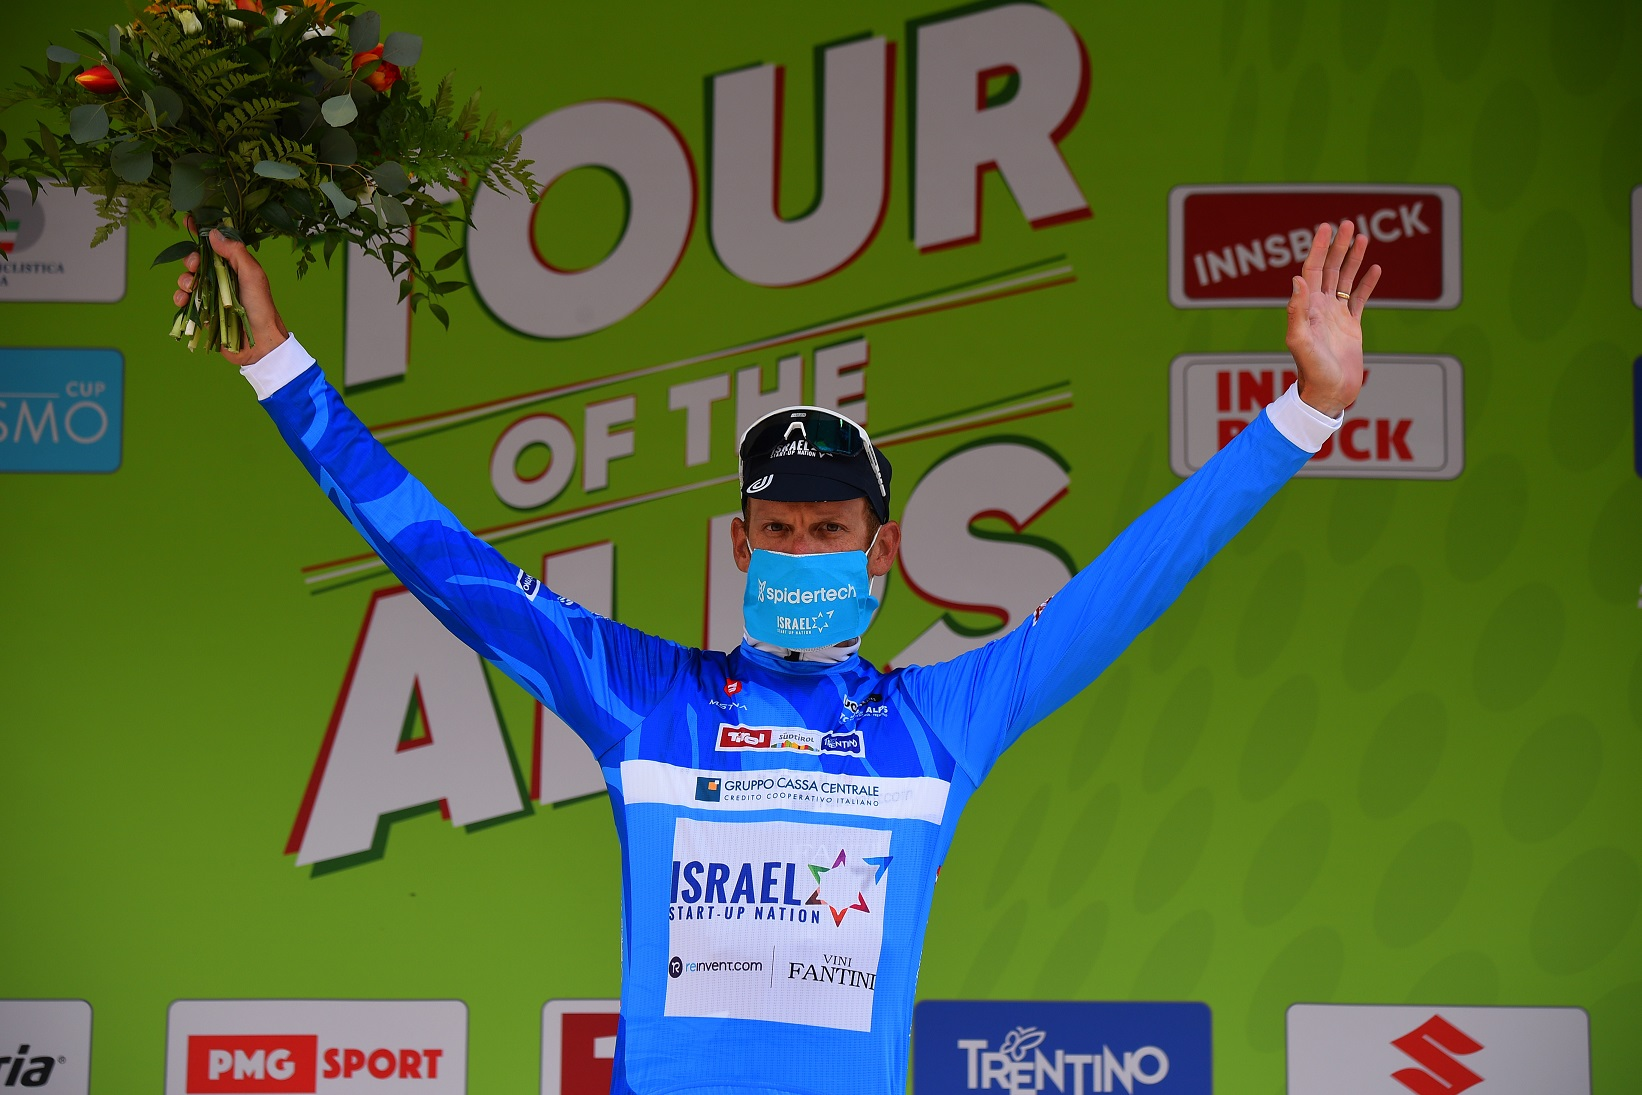 De Marchi takes the KOM jersey on stage 1 of Tour of the Alps